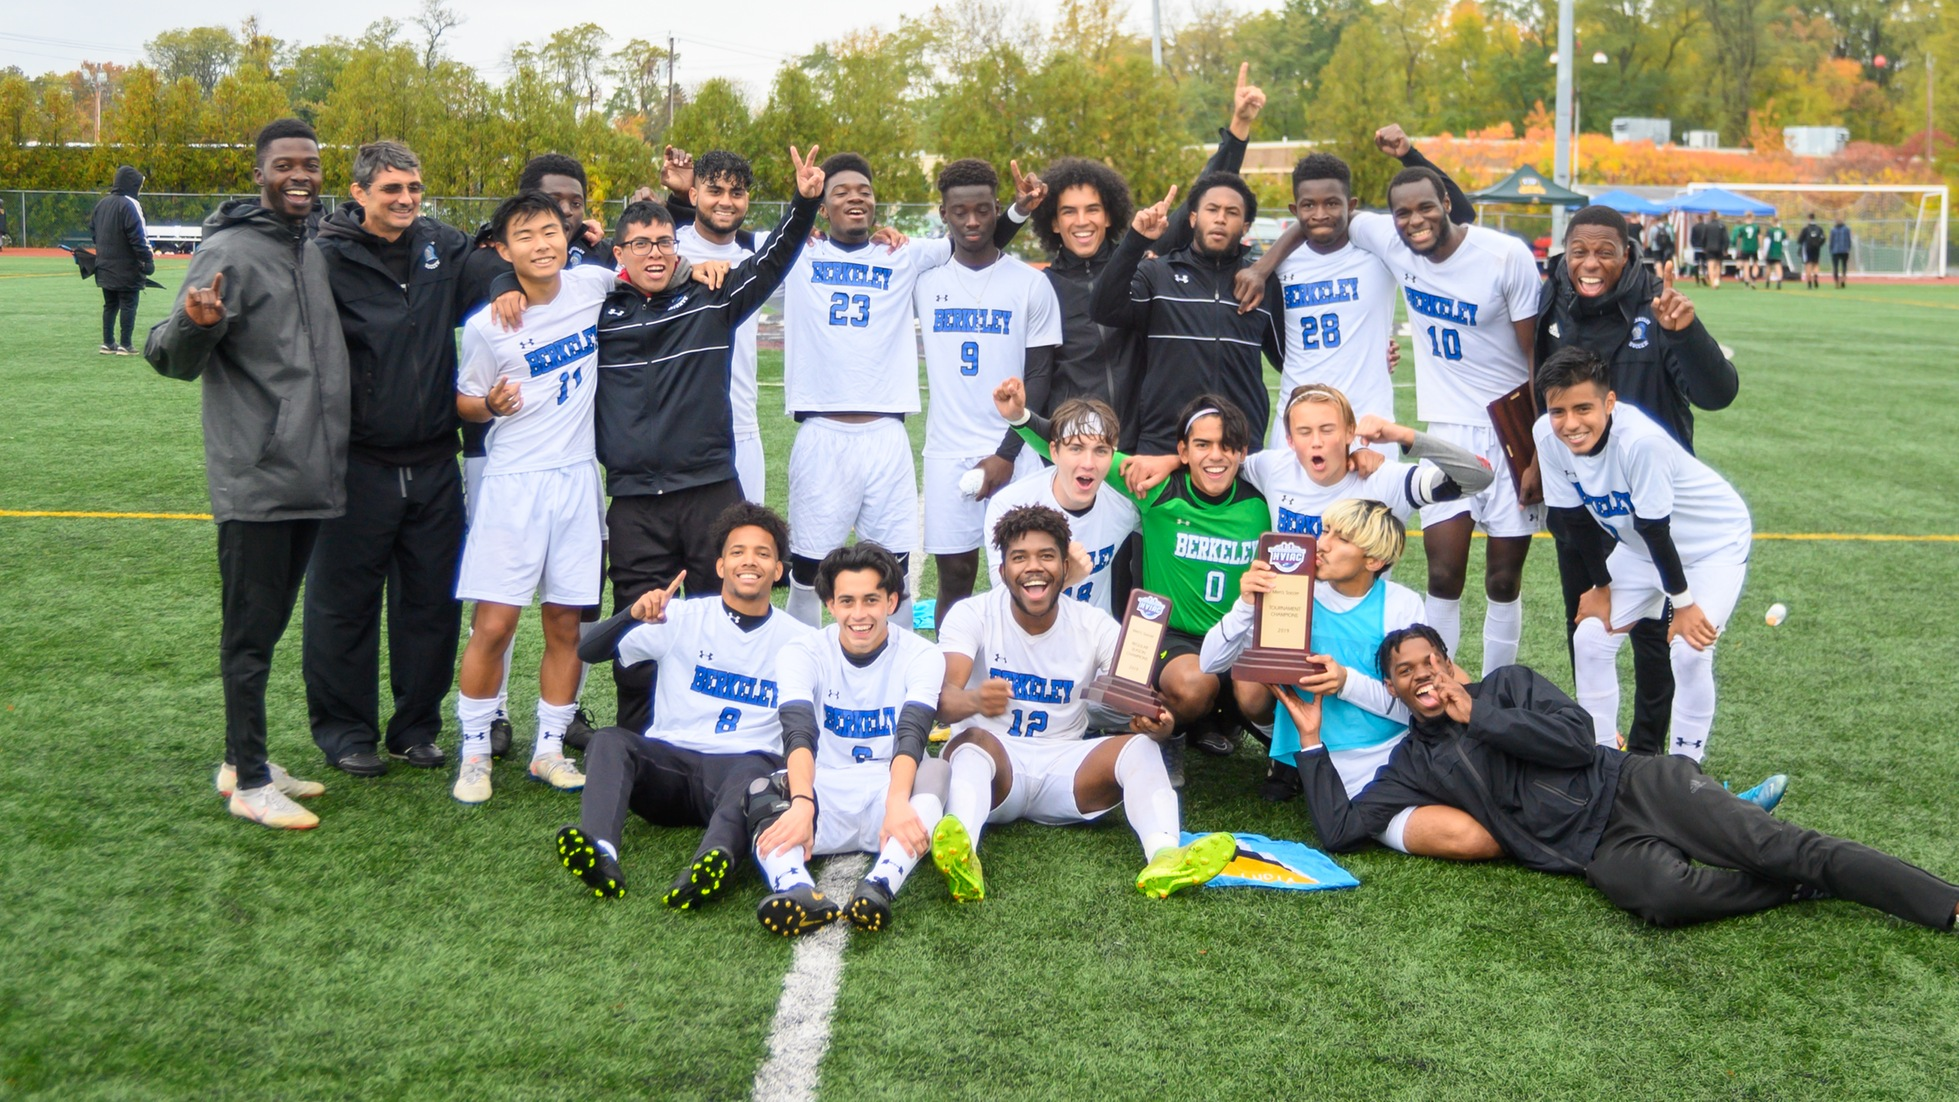 Berkeley Fends Off SUNY ESF For First Men's Soccer Title Since 2015